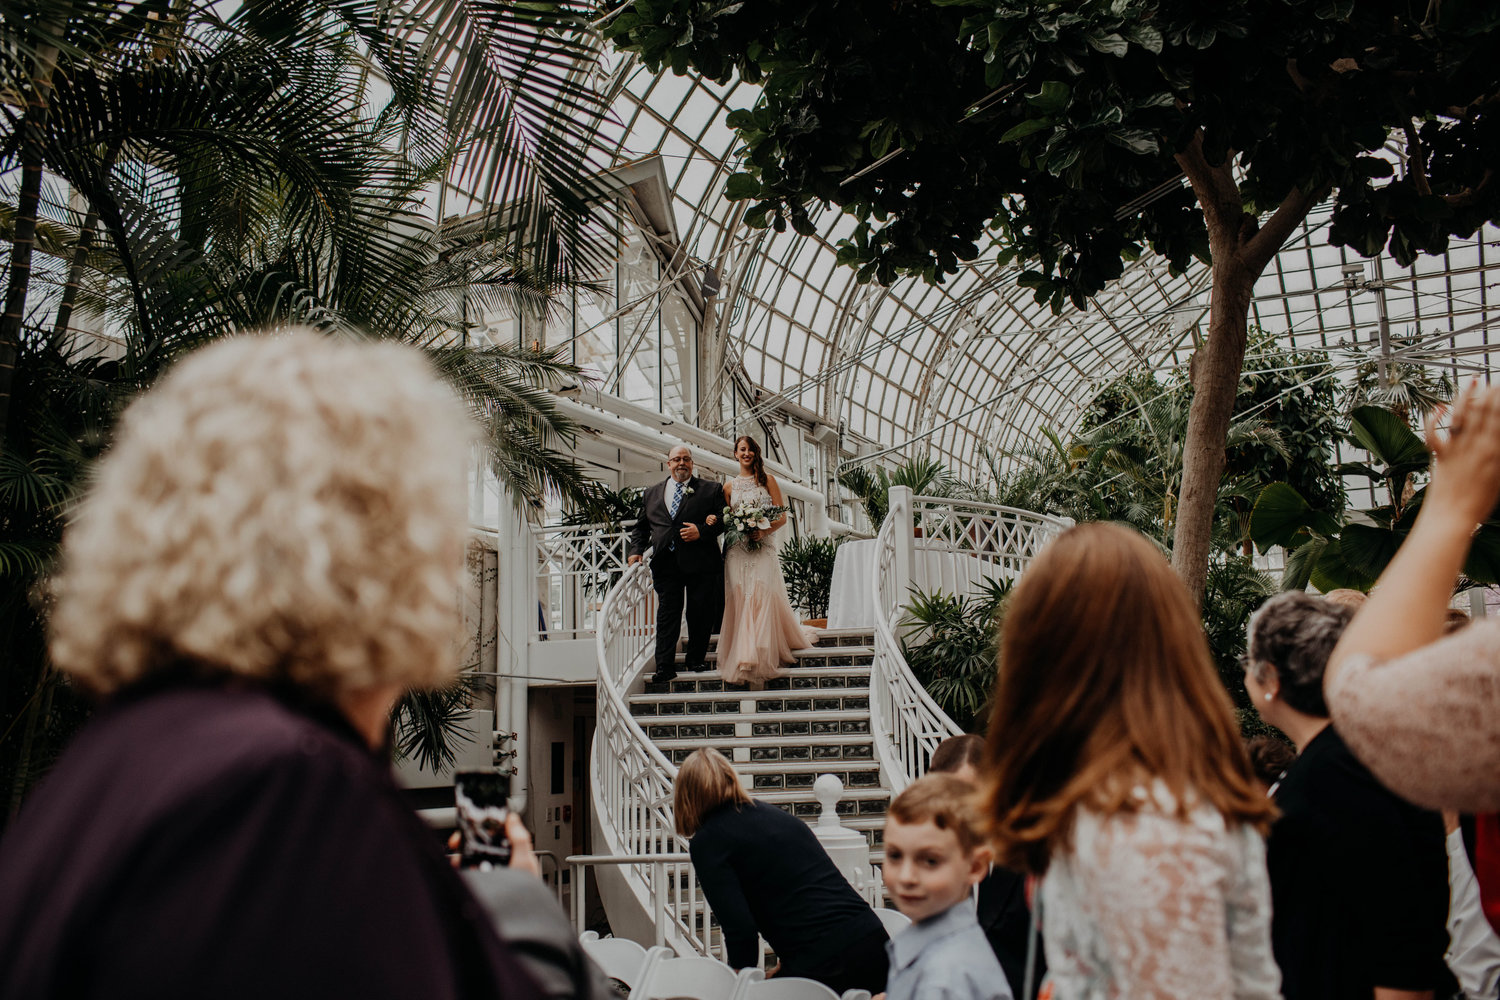 franklin+park+conservatory+wedding+columbus+ohio+wedding+photographer+grace+e+jones+photography255.jpg